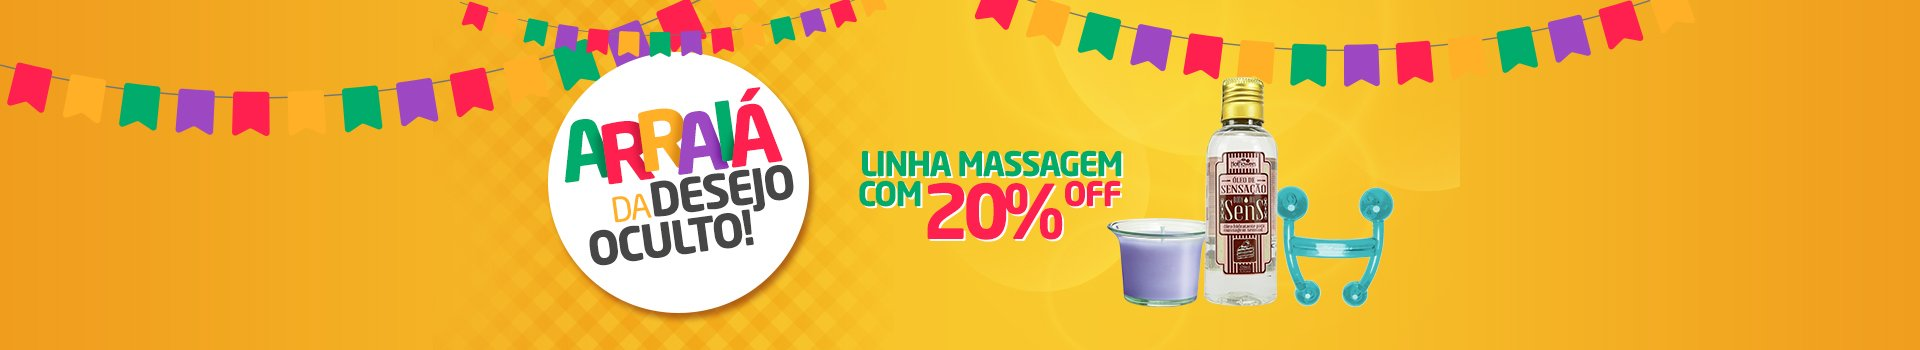 Festa Junina - massagem